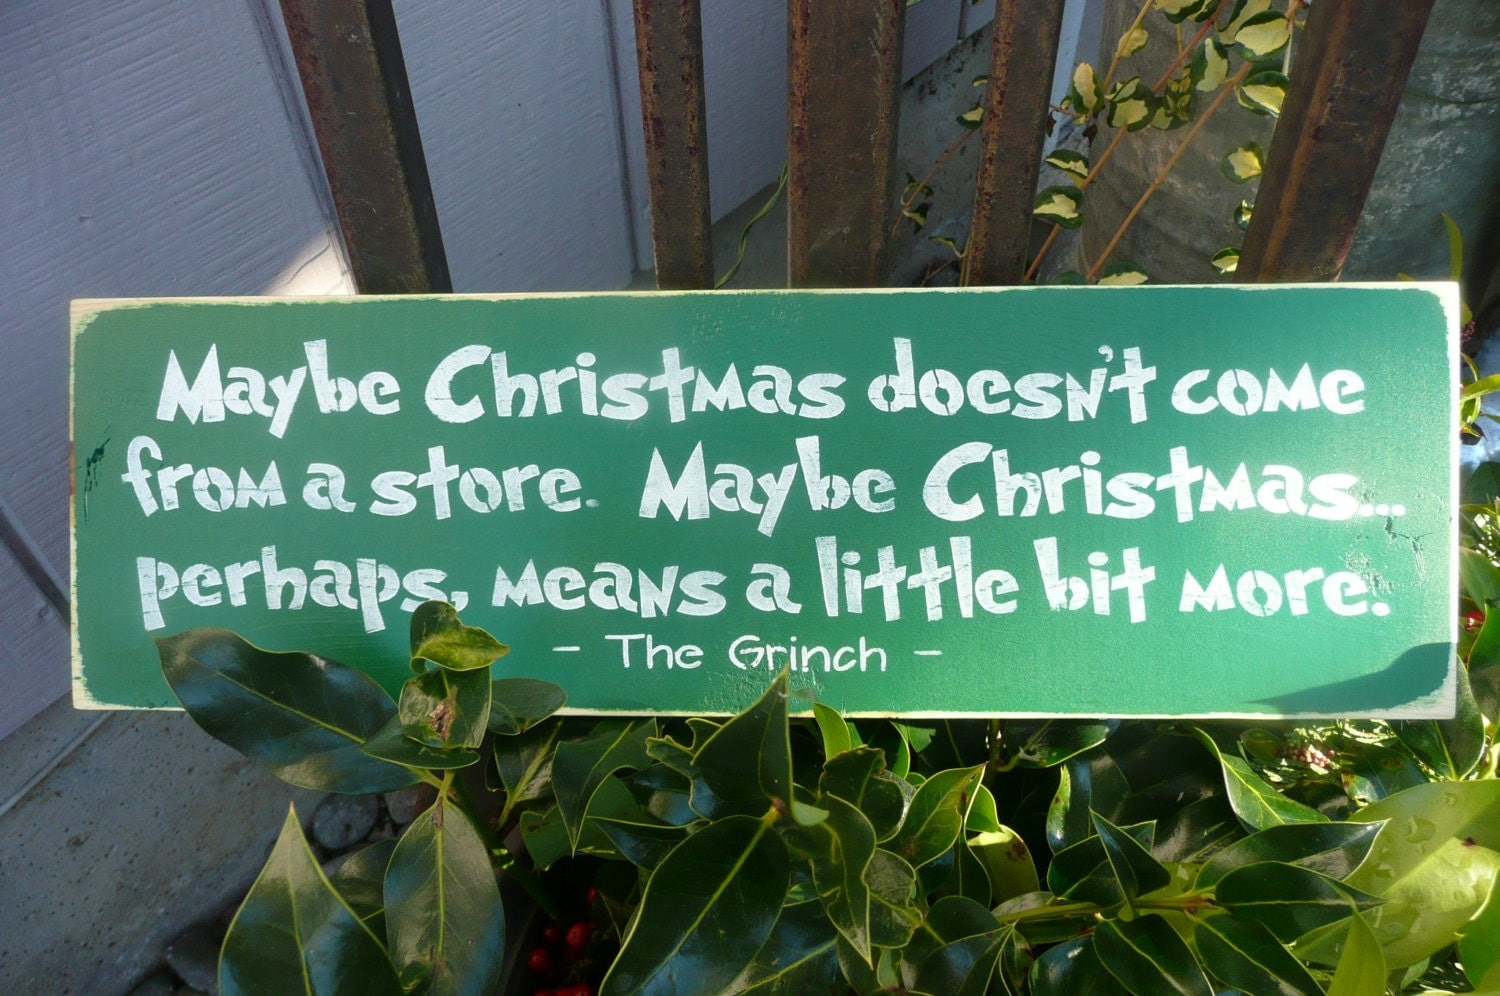 MAyBe CHRISTMAS Doesn't Come From A Store-Hand By SiMpleGalz